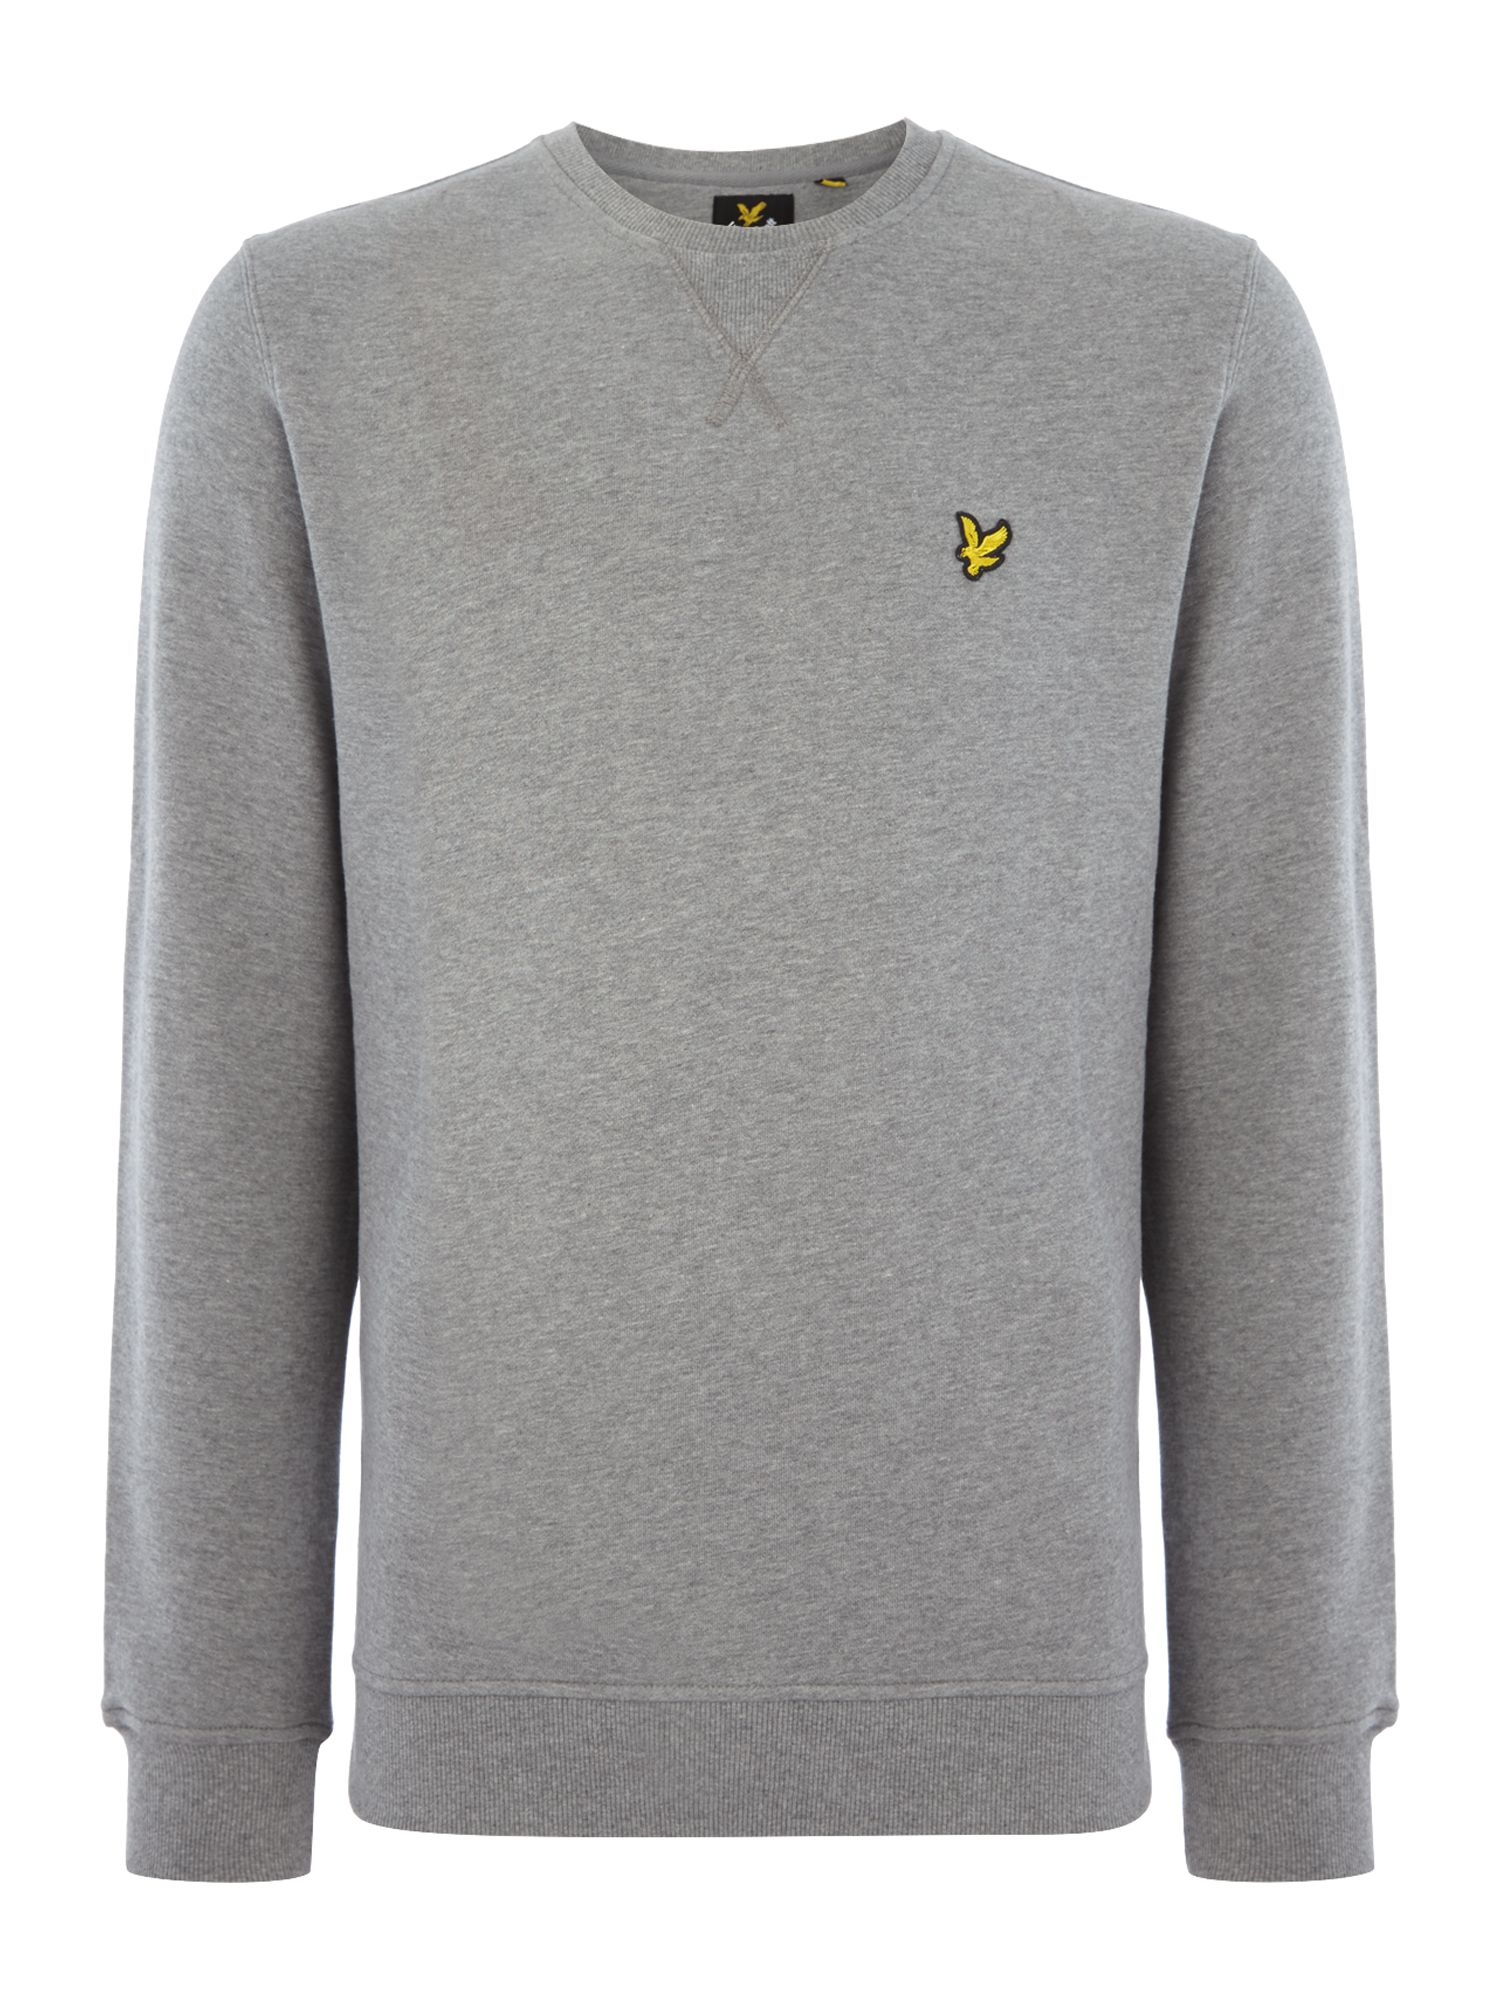 Men's Lyle and Scott Crew Neck Sweatshirt, Mid Grey Marl